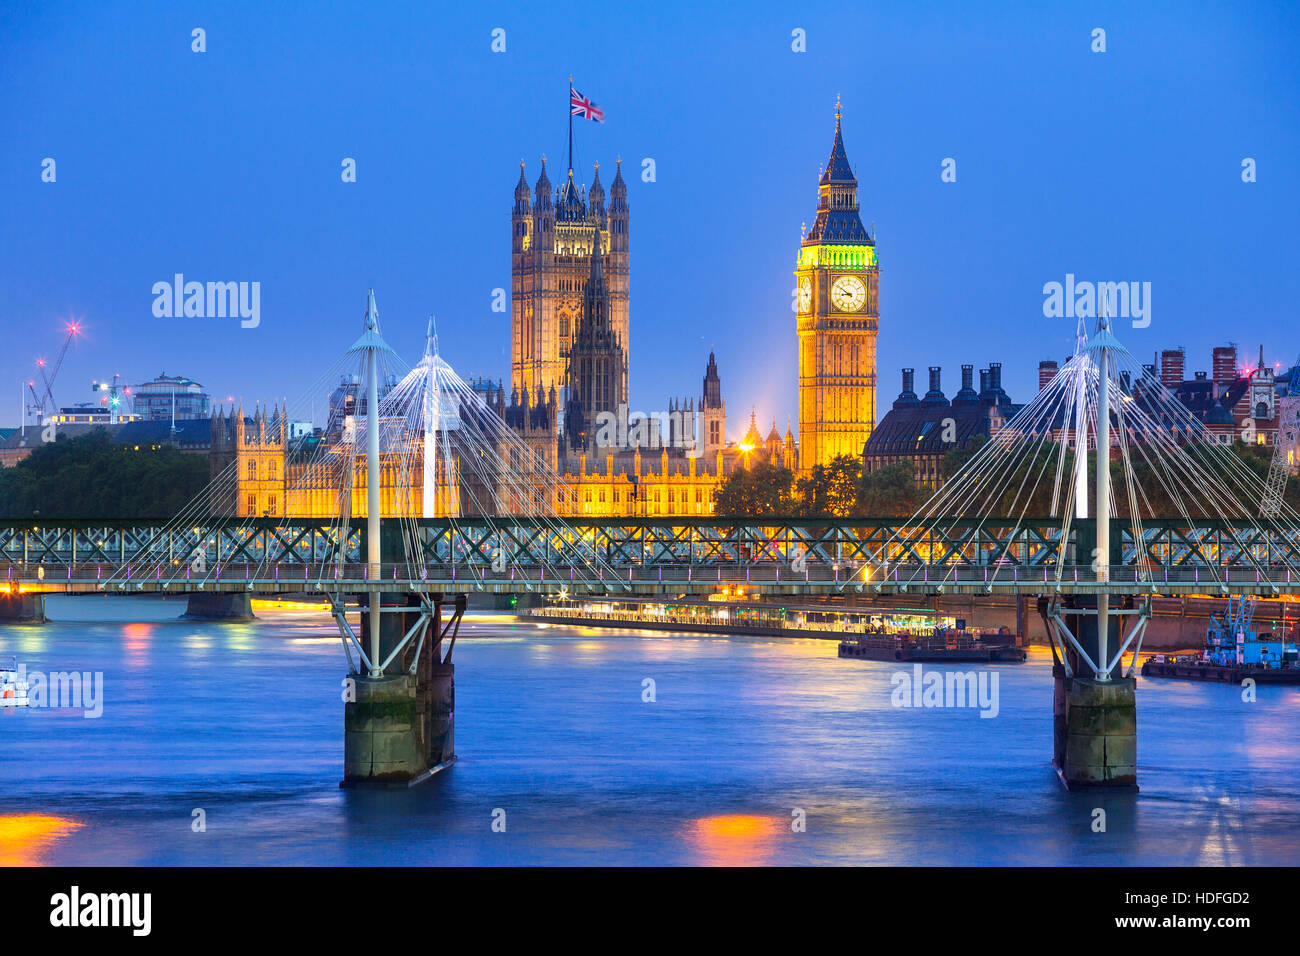 London at twilight. County Hall, Westminster Bridge, Big Ben and Houses of Parliament. - Stock Image